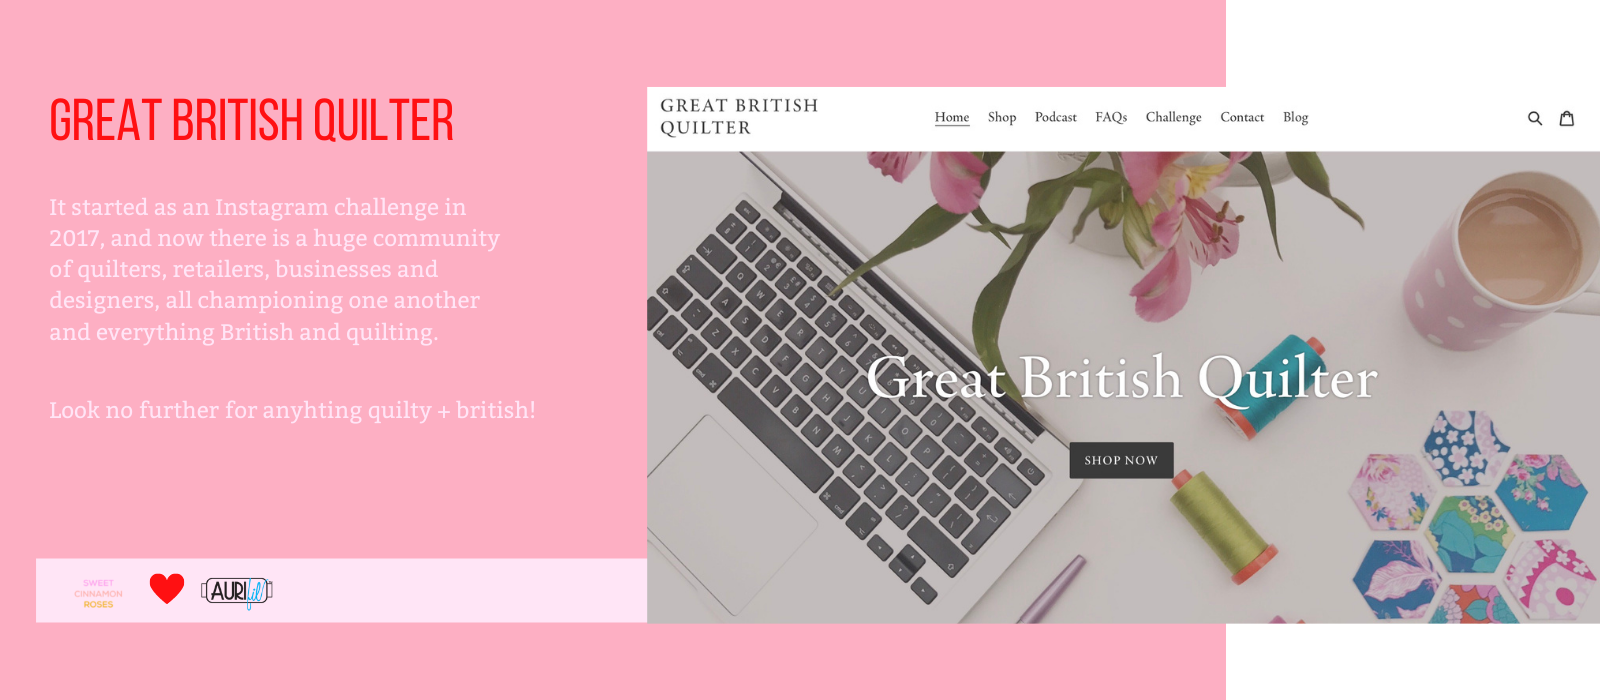 Great British Quilter, website and shop